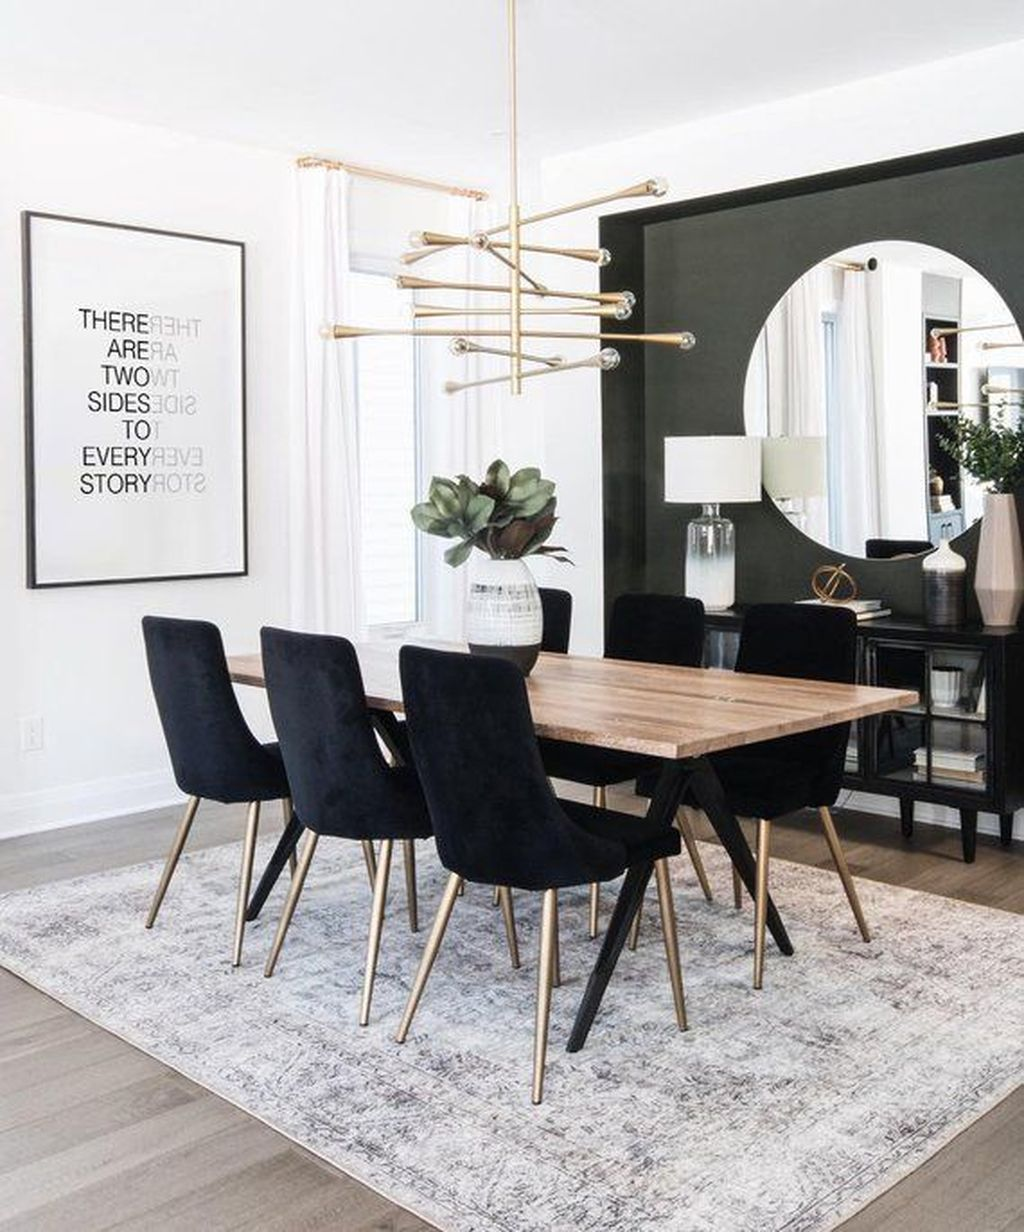 35 Amazing Black And White Dining Room Design Ideas With Elegant Look Modern Dining Room Dining Room Colors Dining Room Inspiration